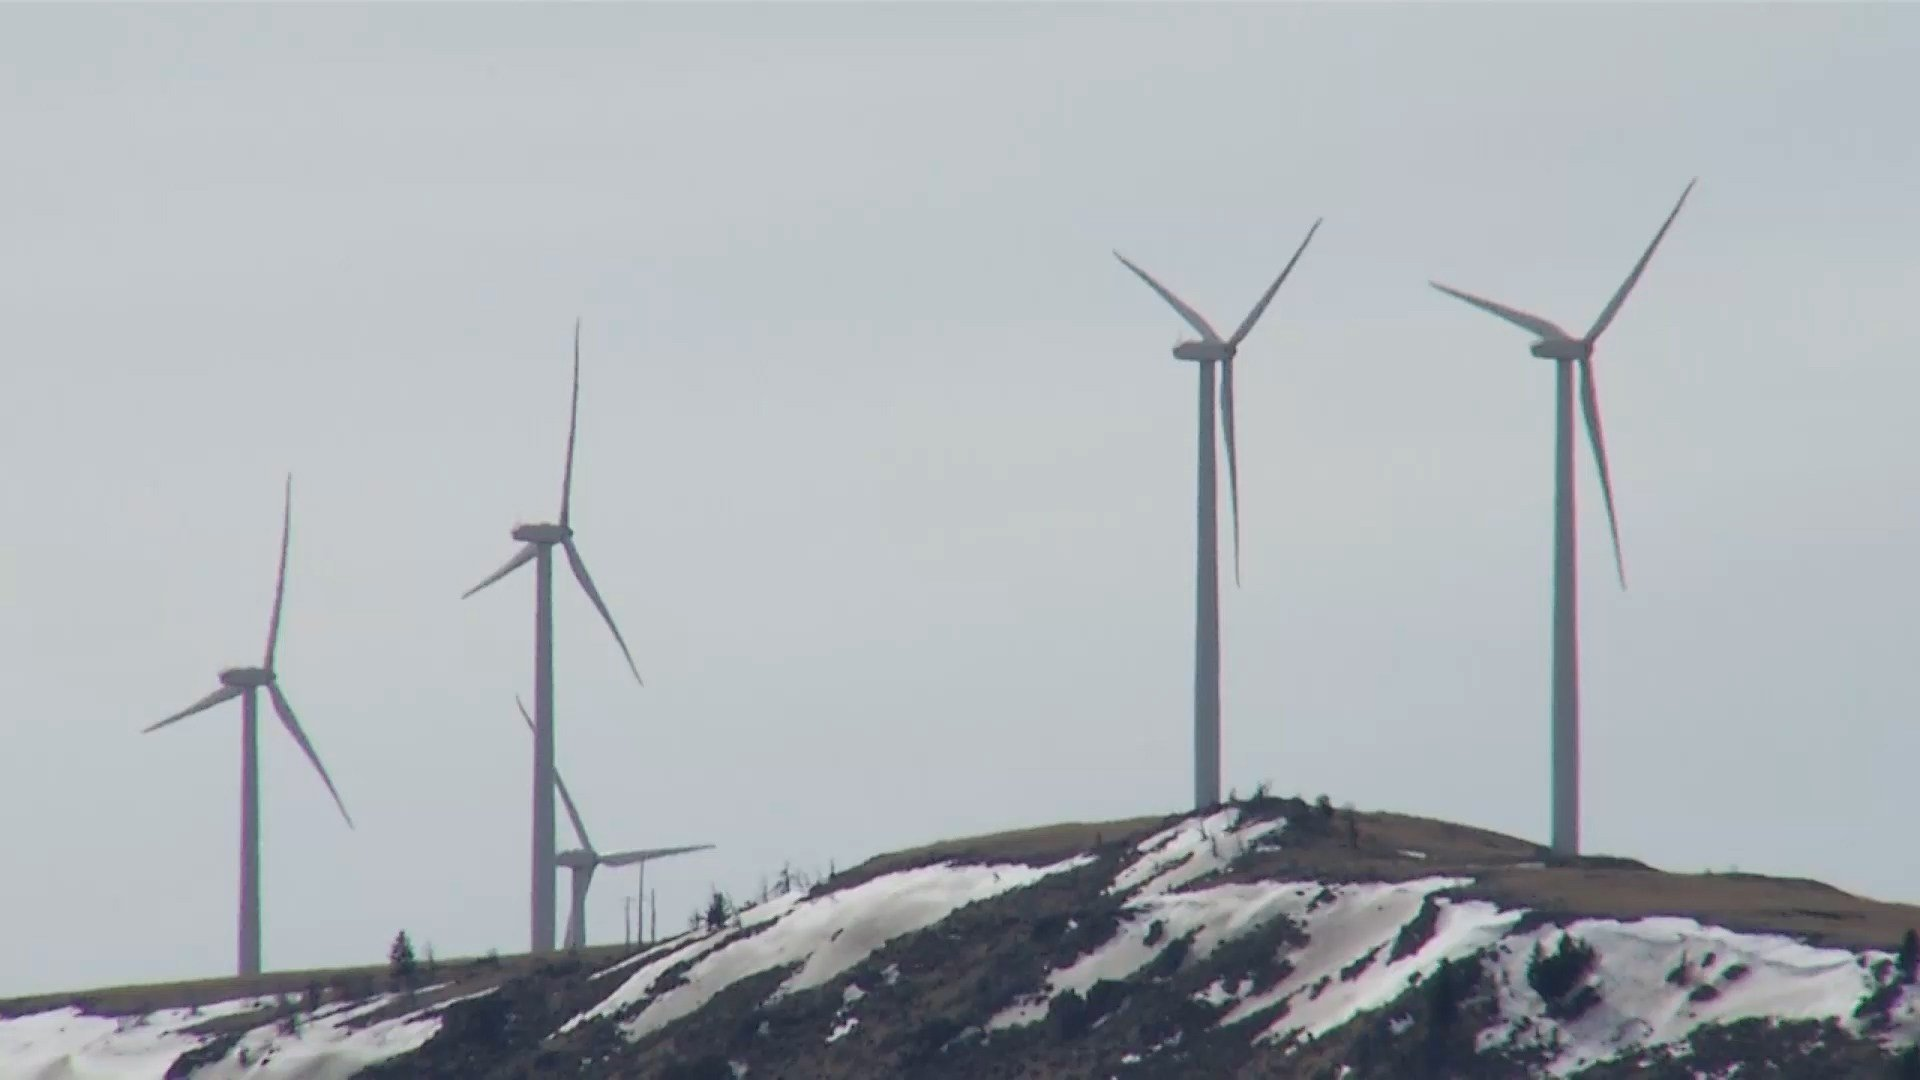 Wind-power turbines in central Montana